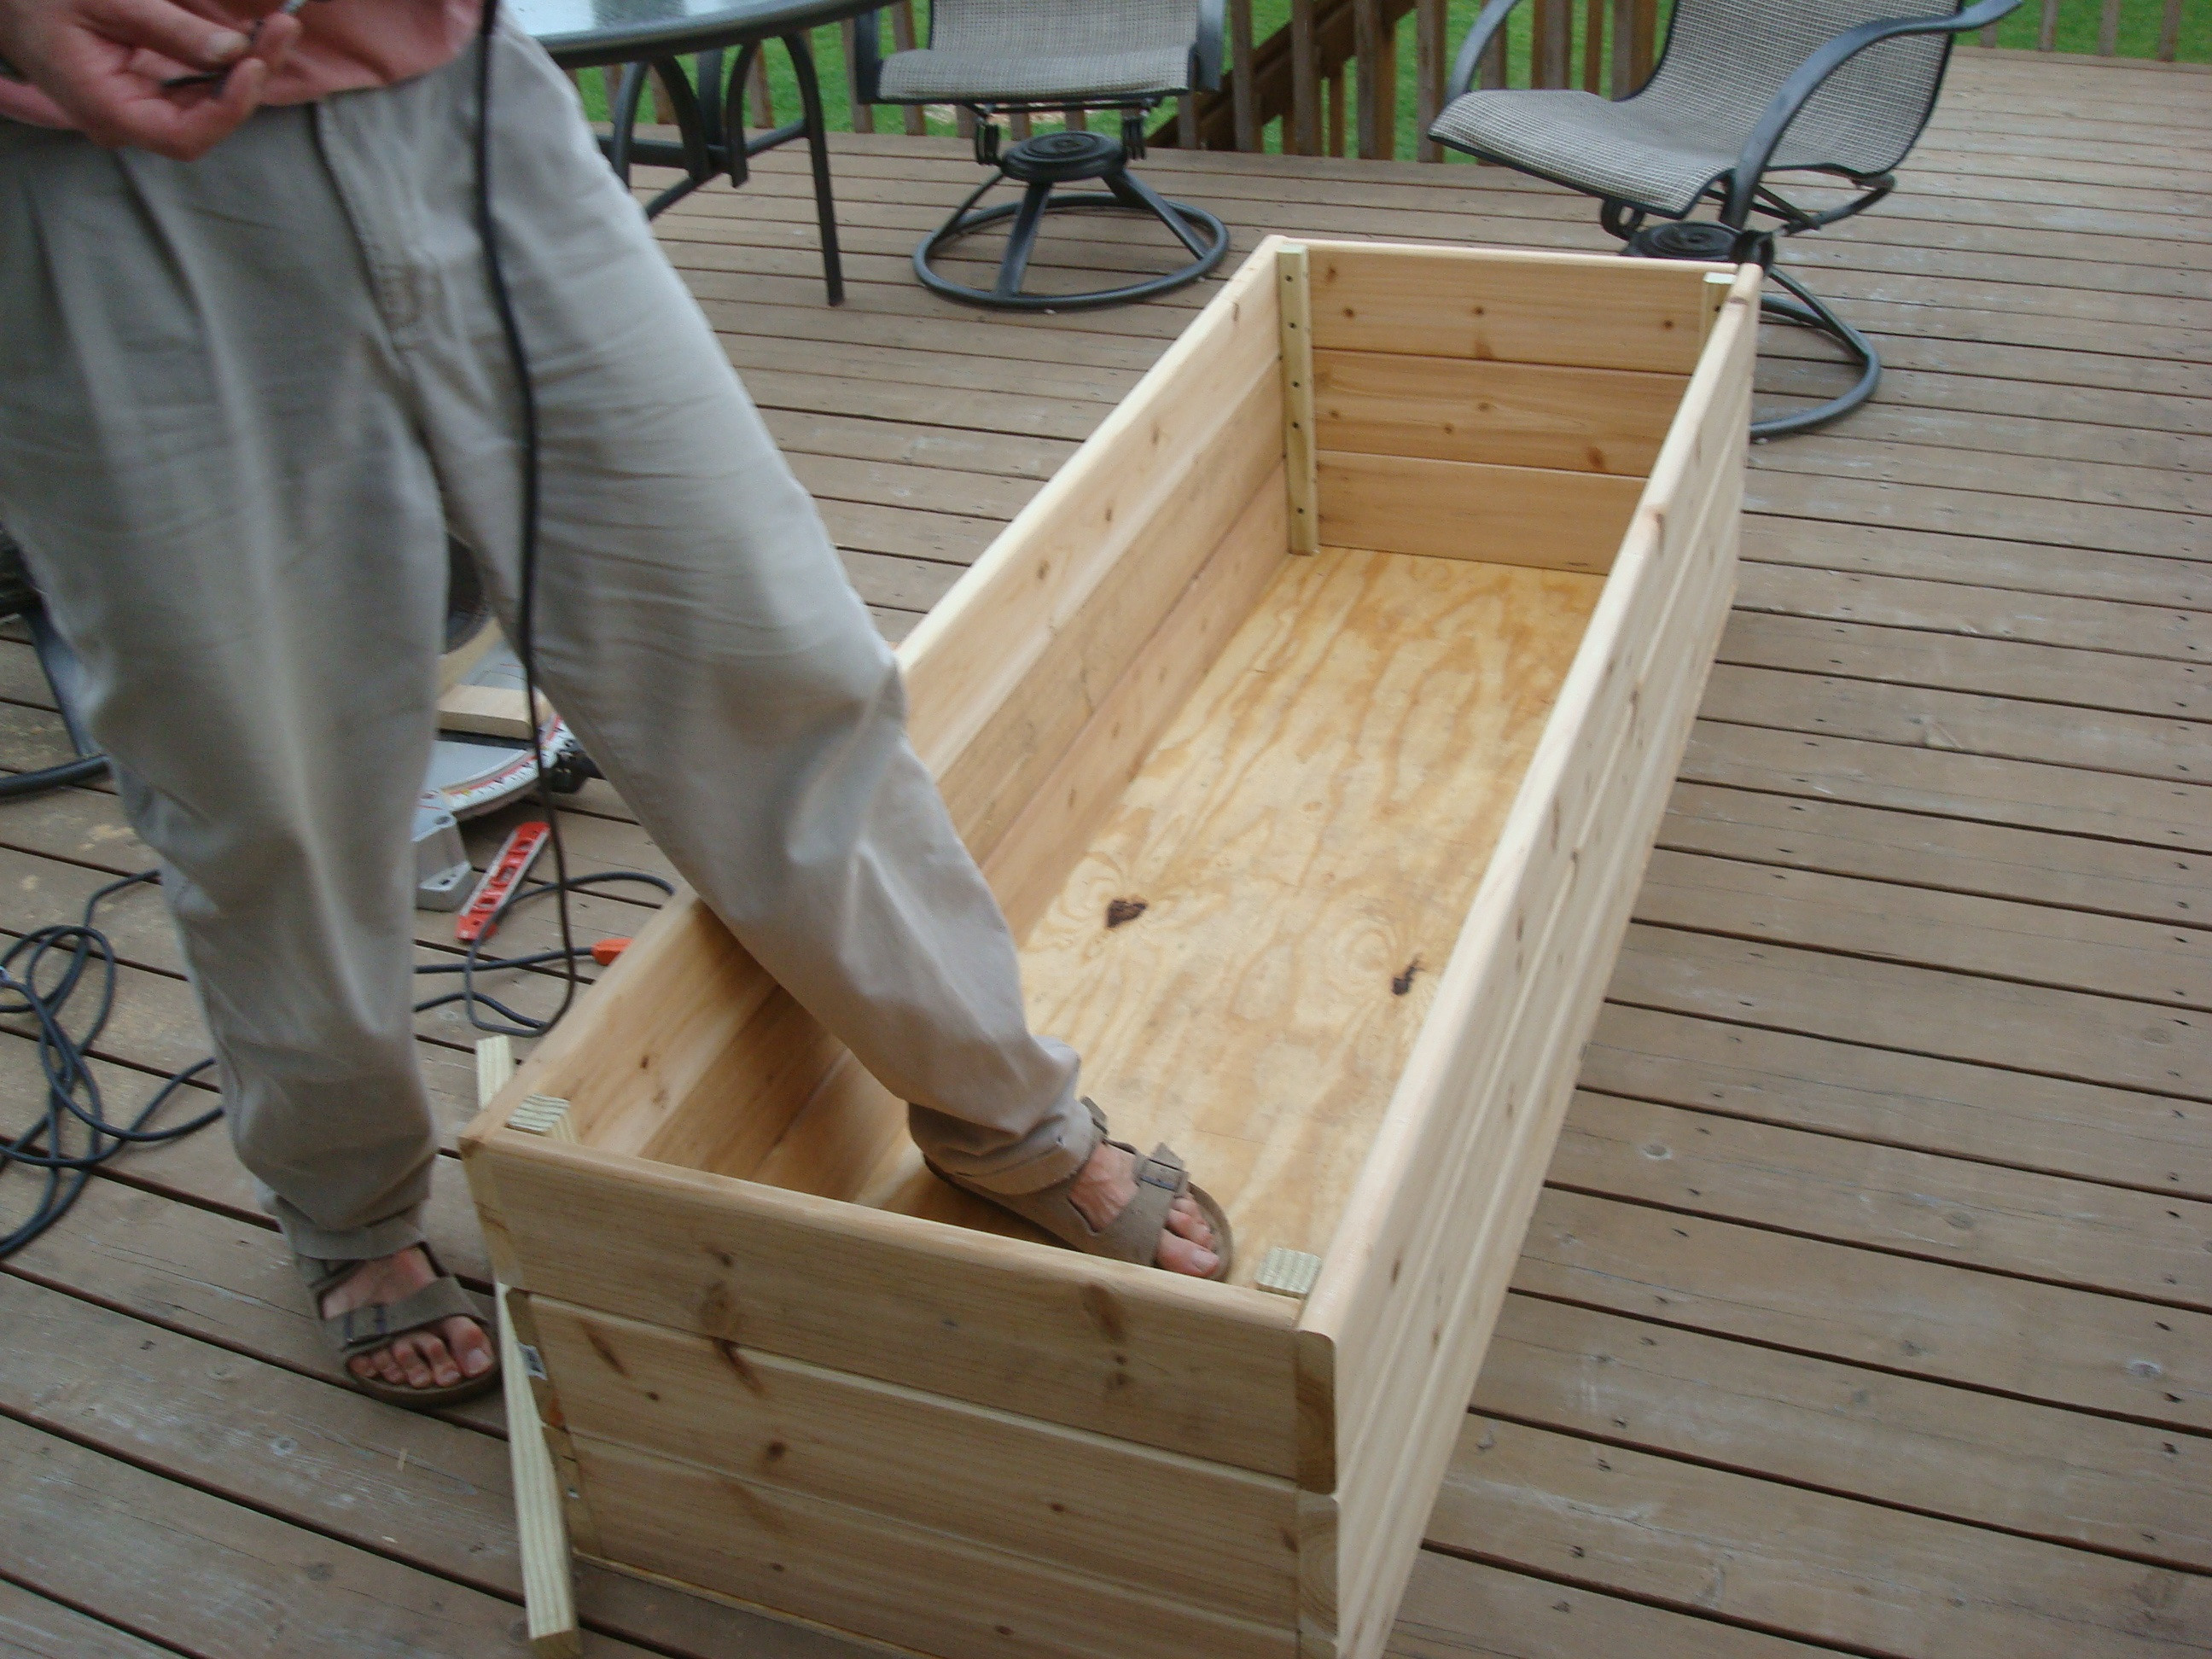 Best ideas about DIY Deck Box . Save or Pin Ve able Garden on the Deck You Bet Now.